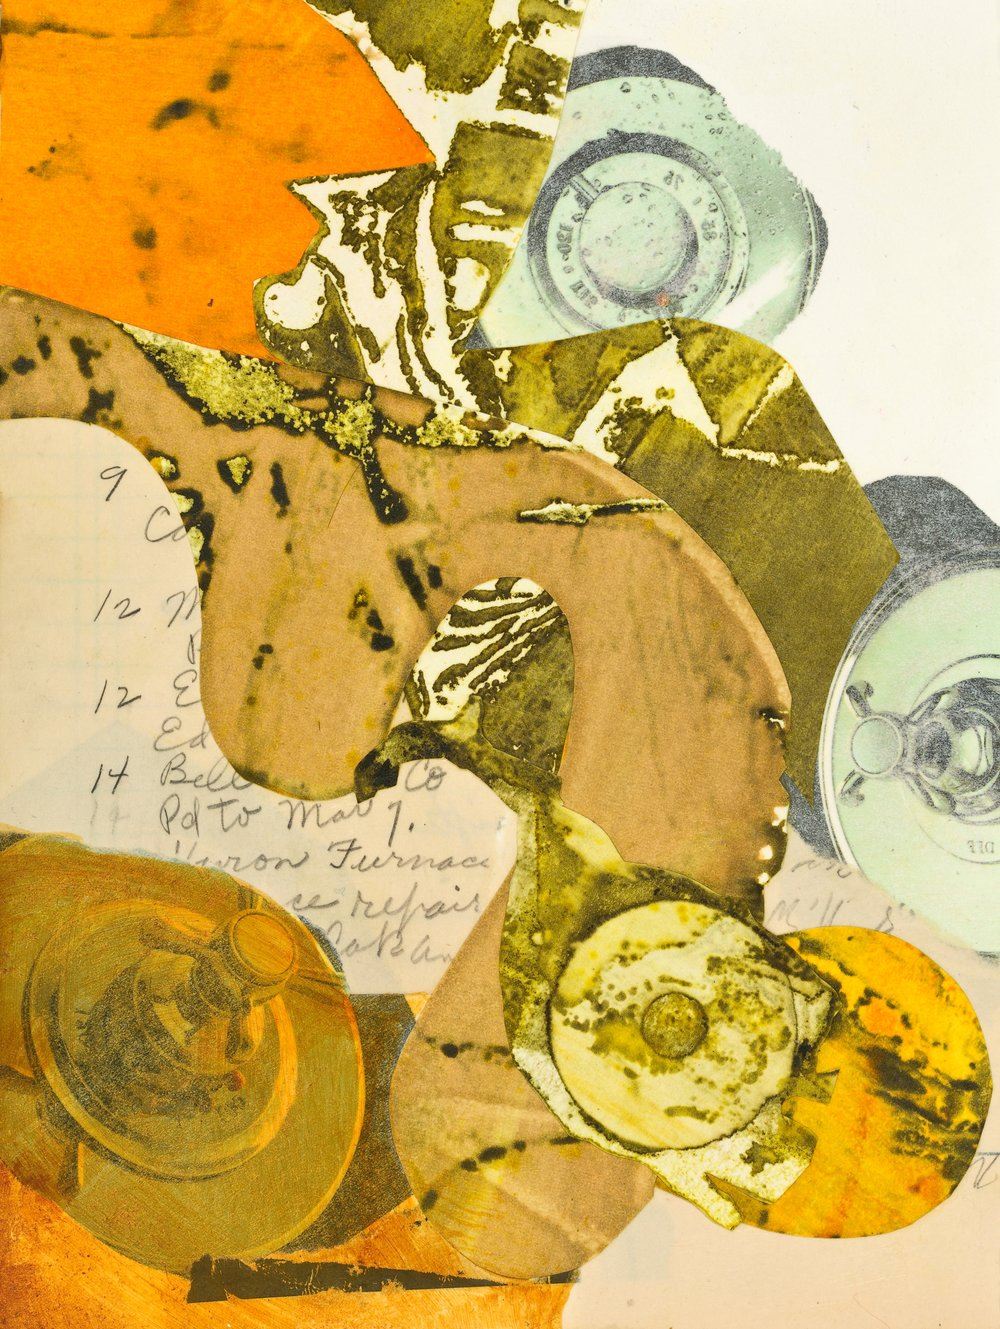 """""""Edna's Accounts - 9,12,12,14 """", mixed media collage, 12"""" x 14"""", $350 (framed)"""